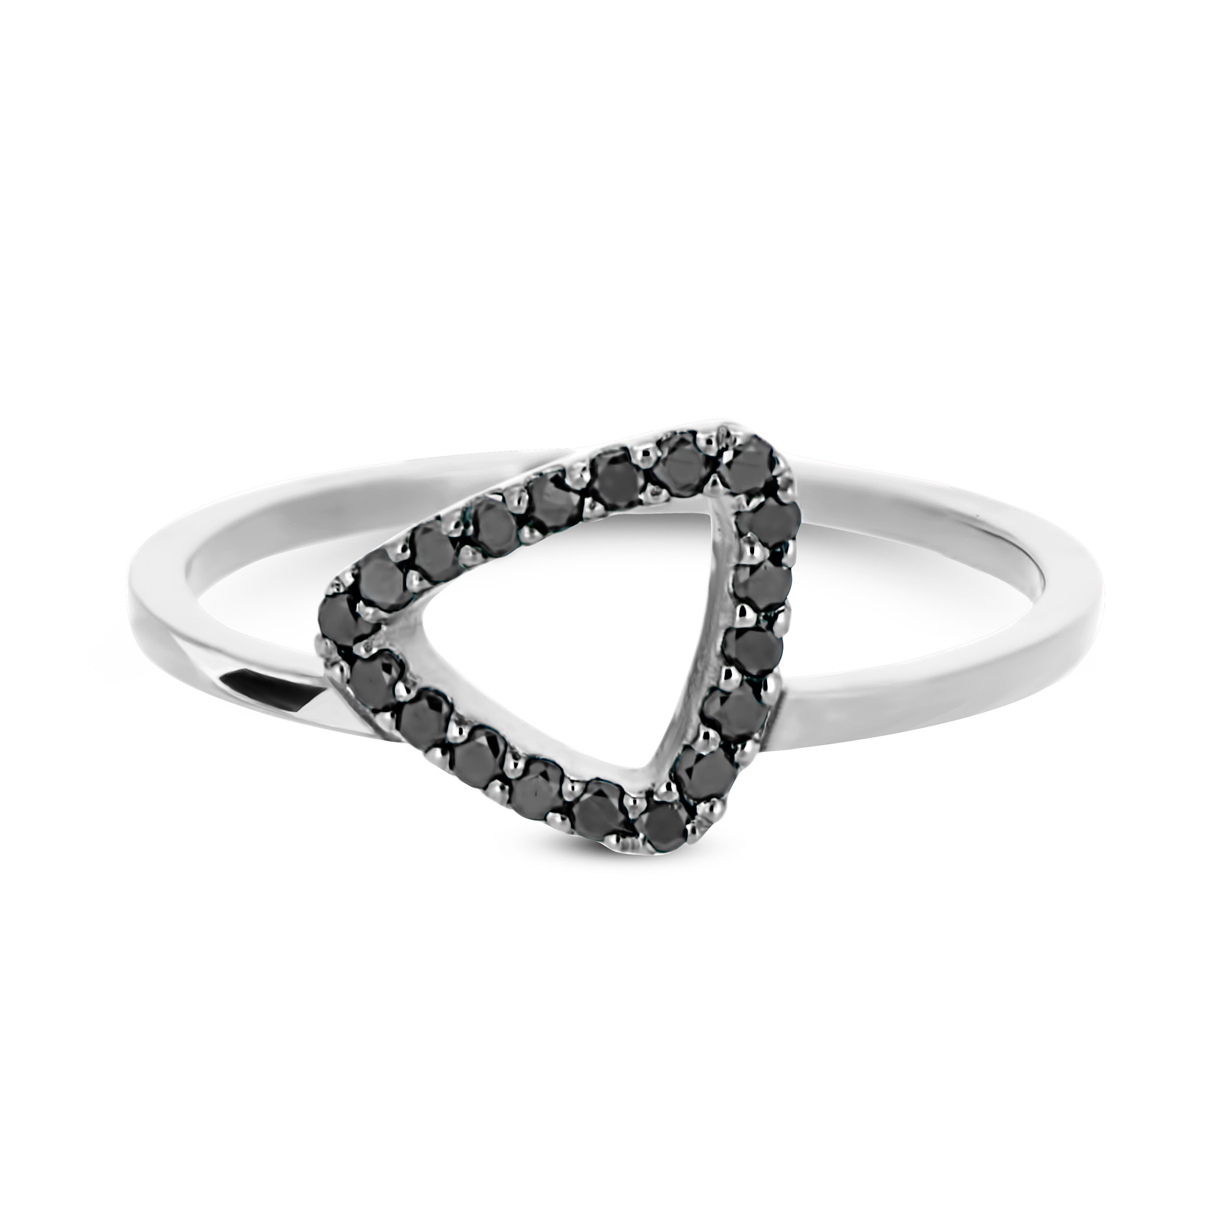 f9d4adc1d74 White Gold Black Diamond Mini Pebble Ring - Adina Jozsef